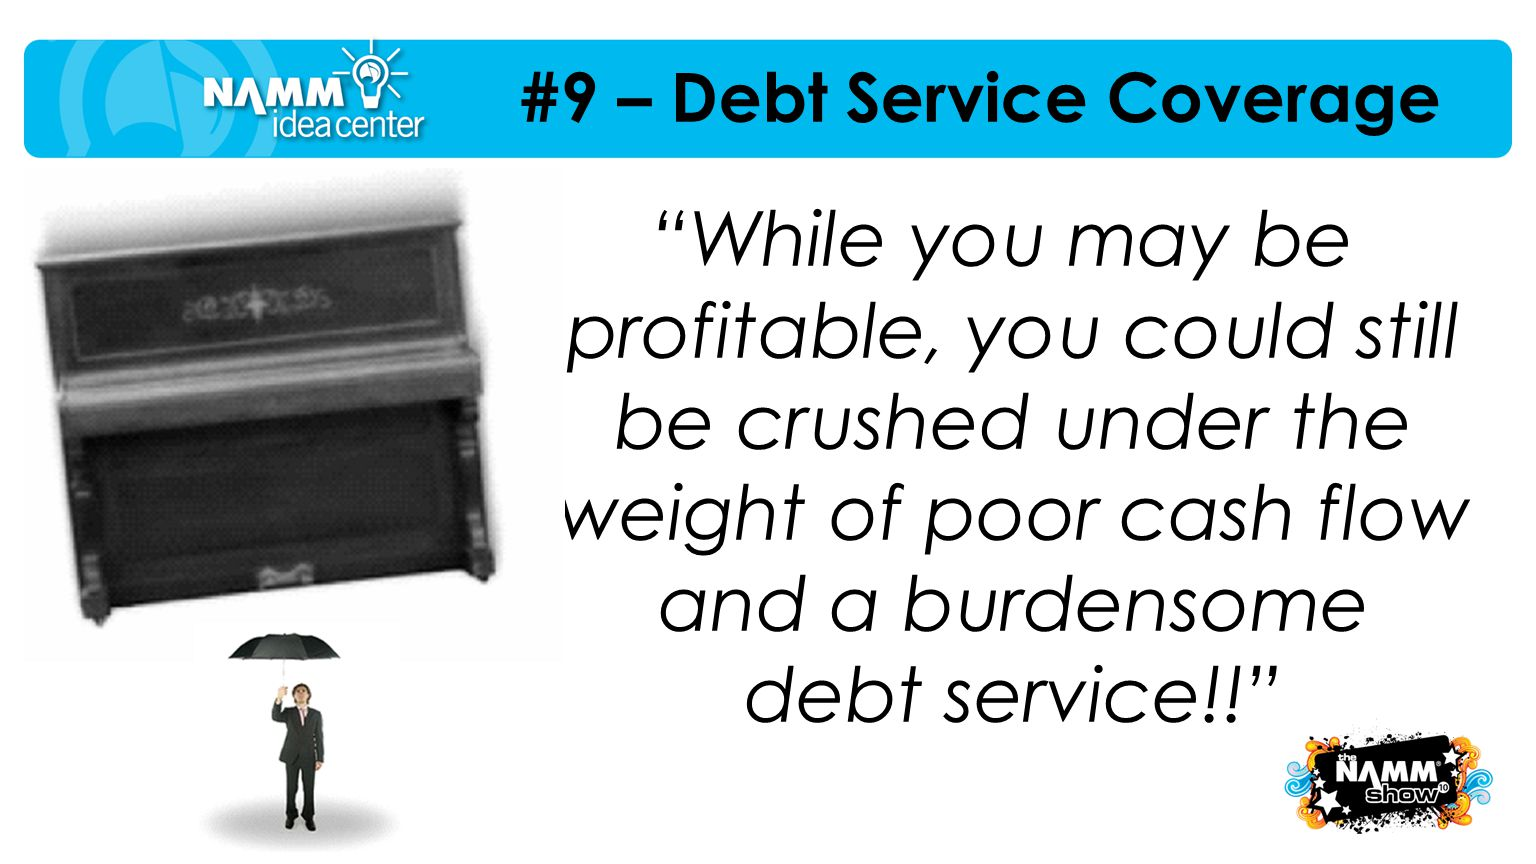 "#9 – Debt Service Coverage ""While you may be profitable, you could still be crushed under the weight of poor cash flow and a burdensome debt service!!"